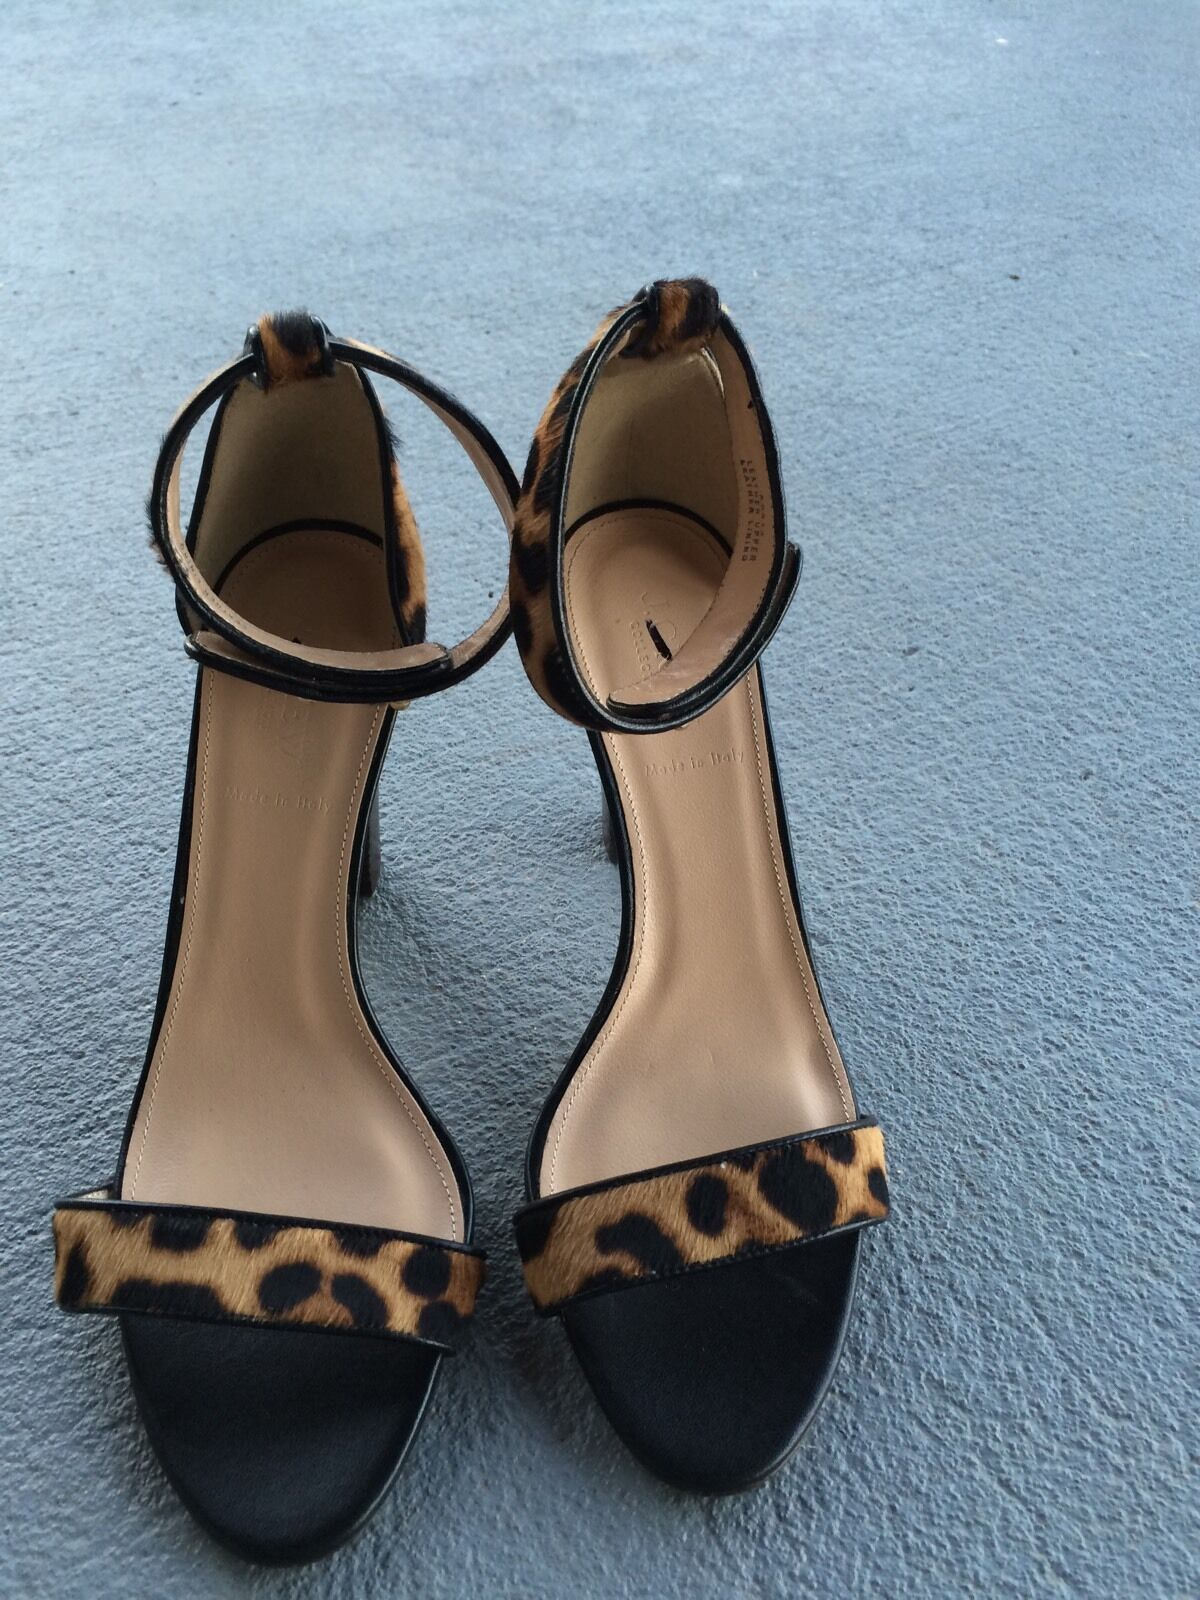 J CREW COLLECTION Lanie Calf-Hair Stacked Heel Heel Heel Sandale Größe 9 325 Leopard #A0512 f7c6da